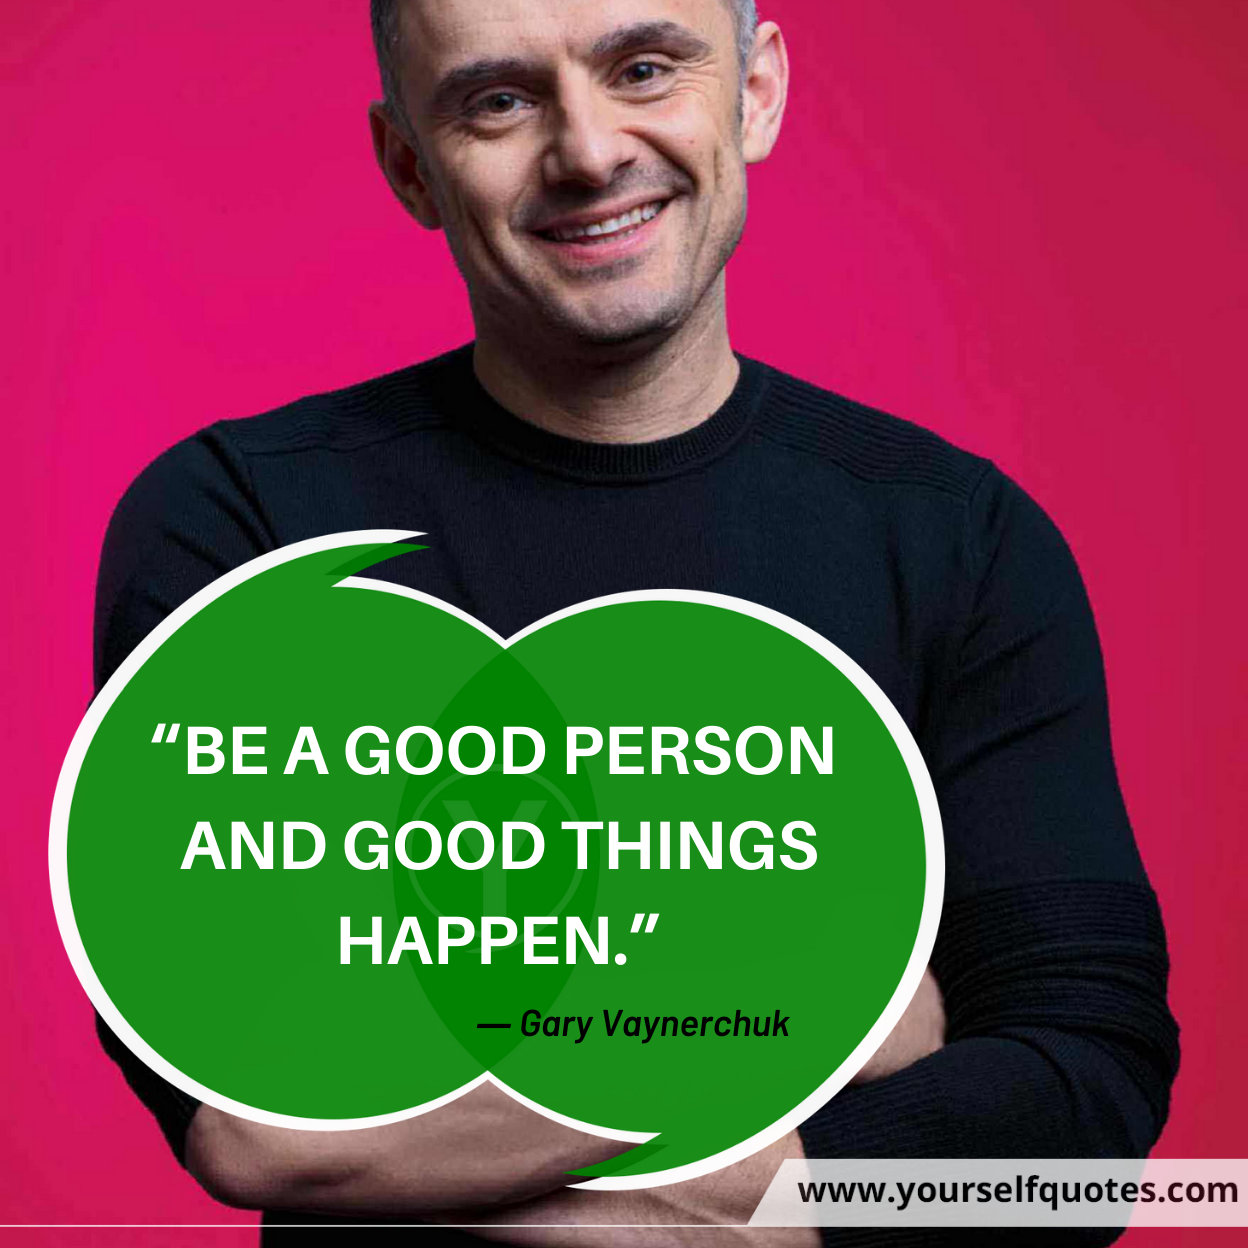 Quotes By Gary Vaynerchuk Images